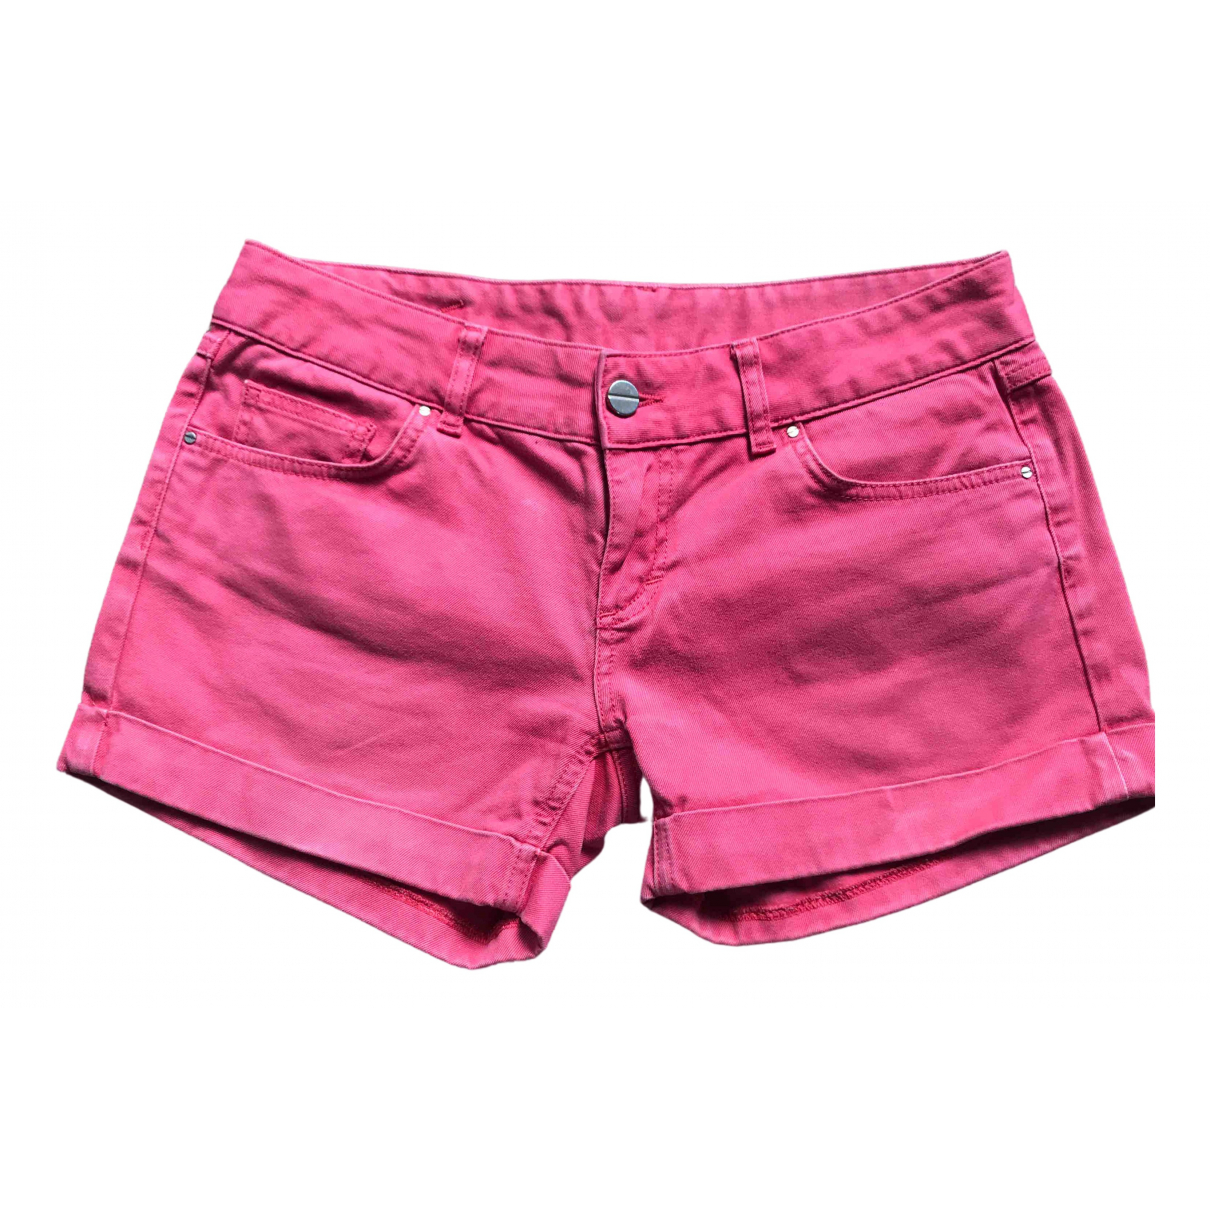 Uterque \N Shorts in  Rosa Baumwolle